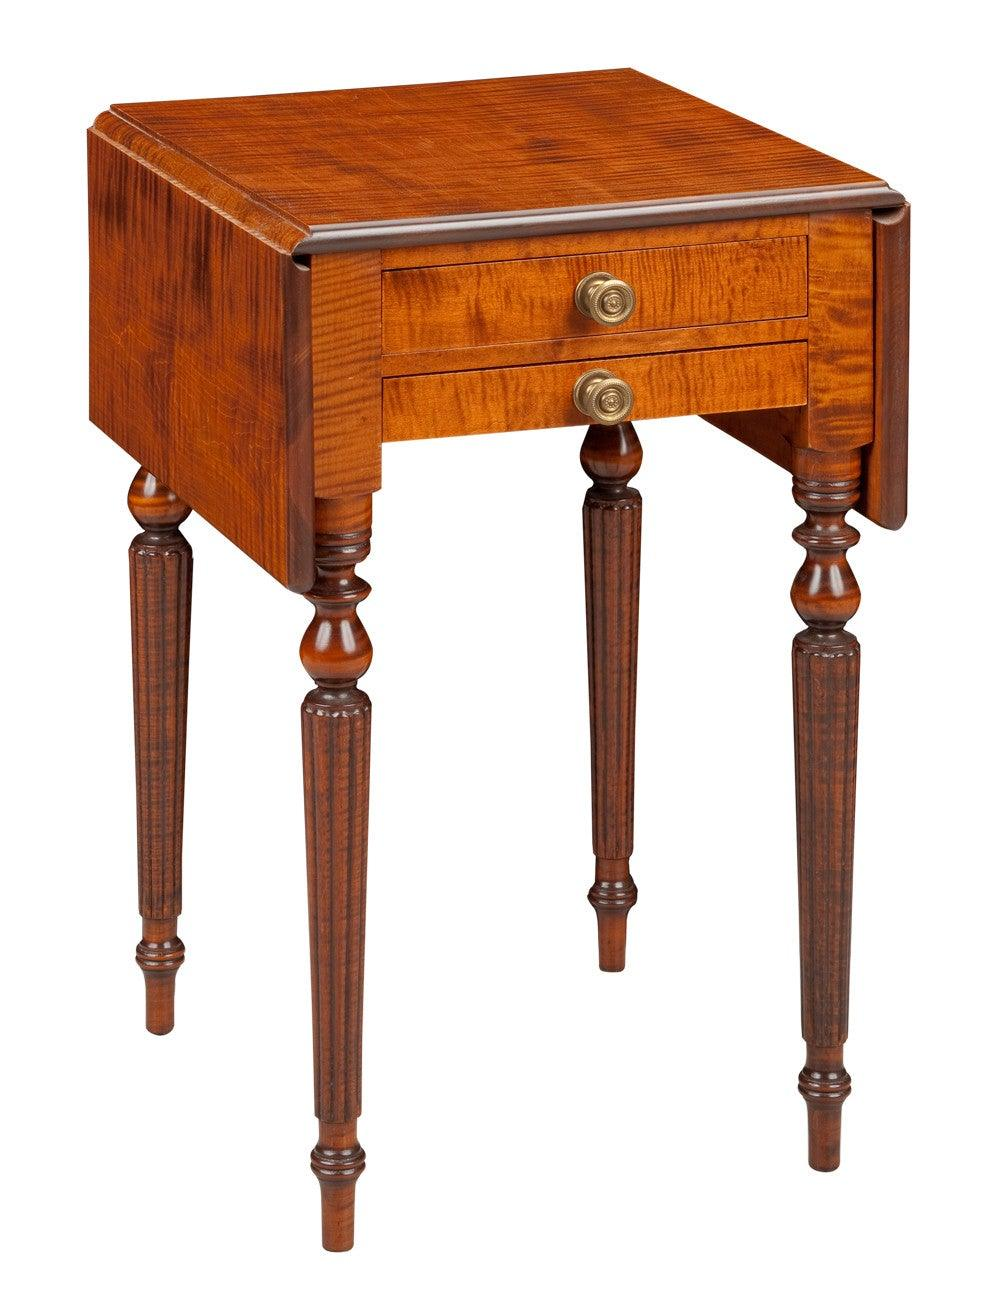 Genial Drop Leaf Side Table With Two Drawers FOSTS 64a